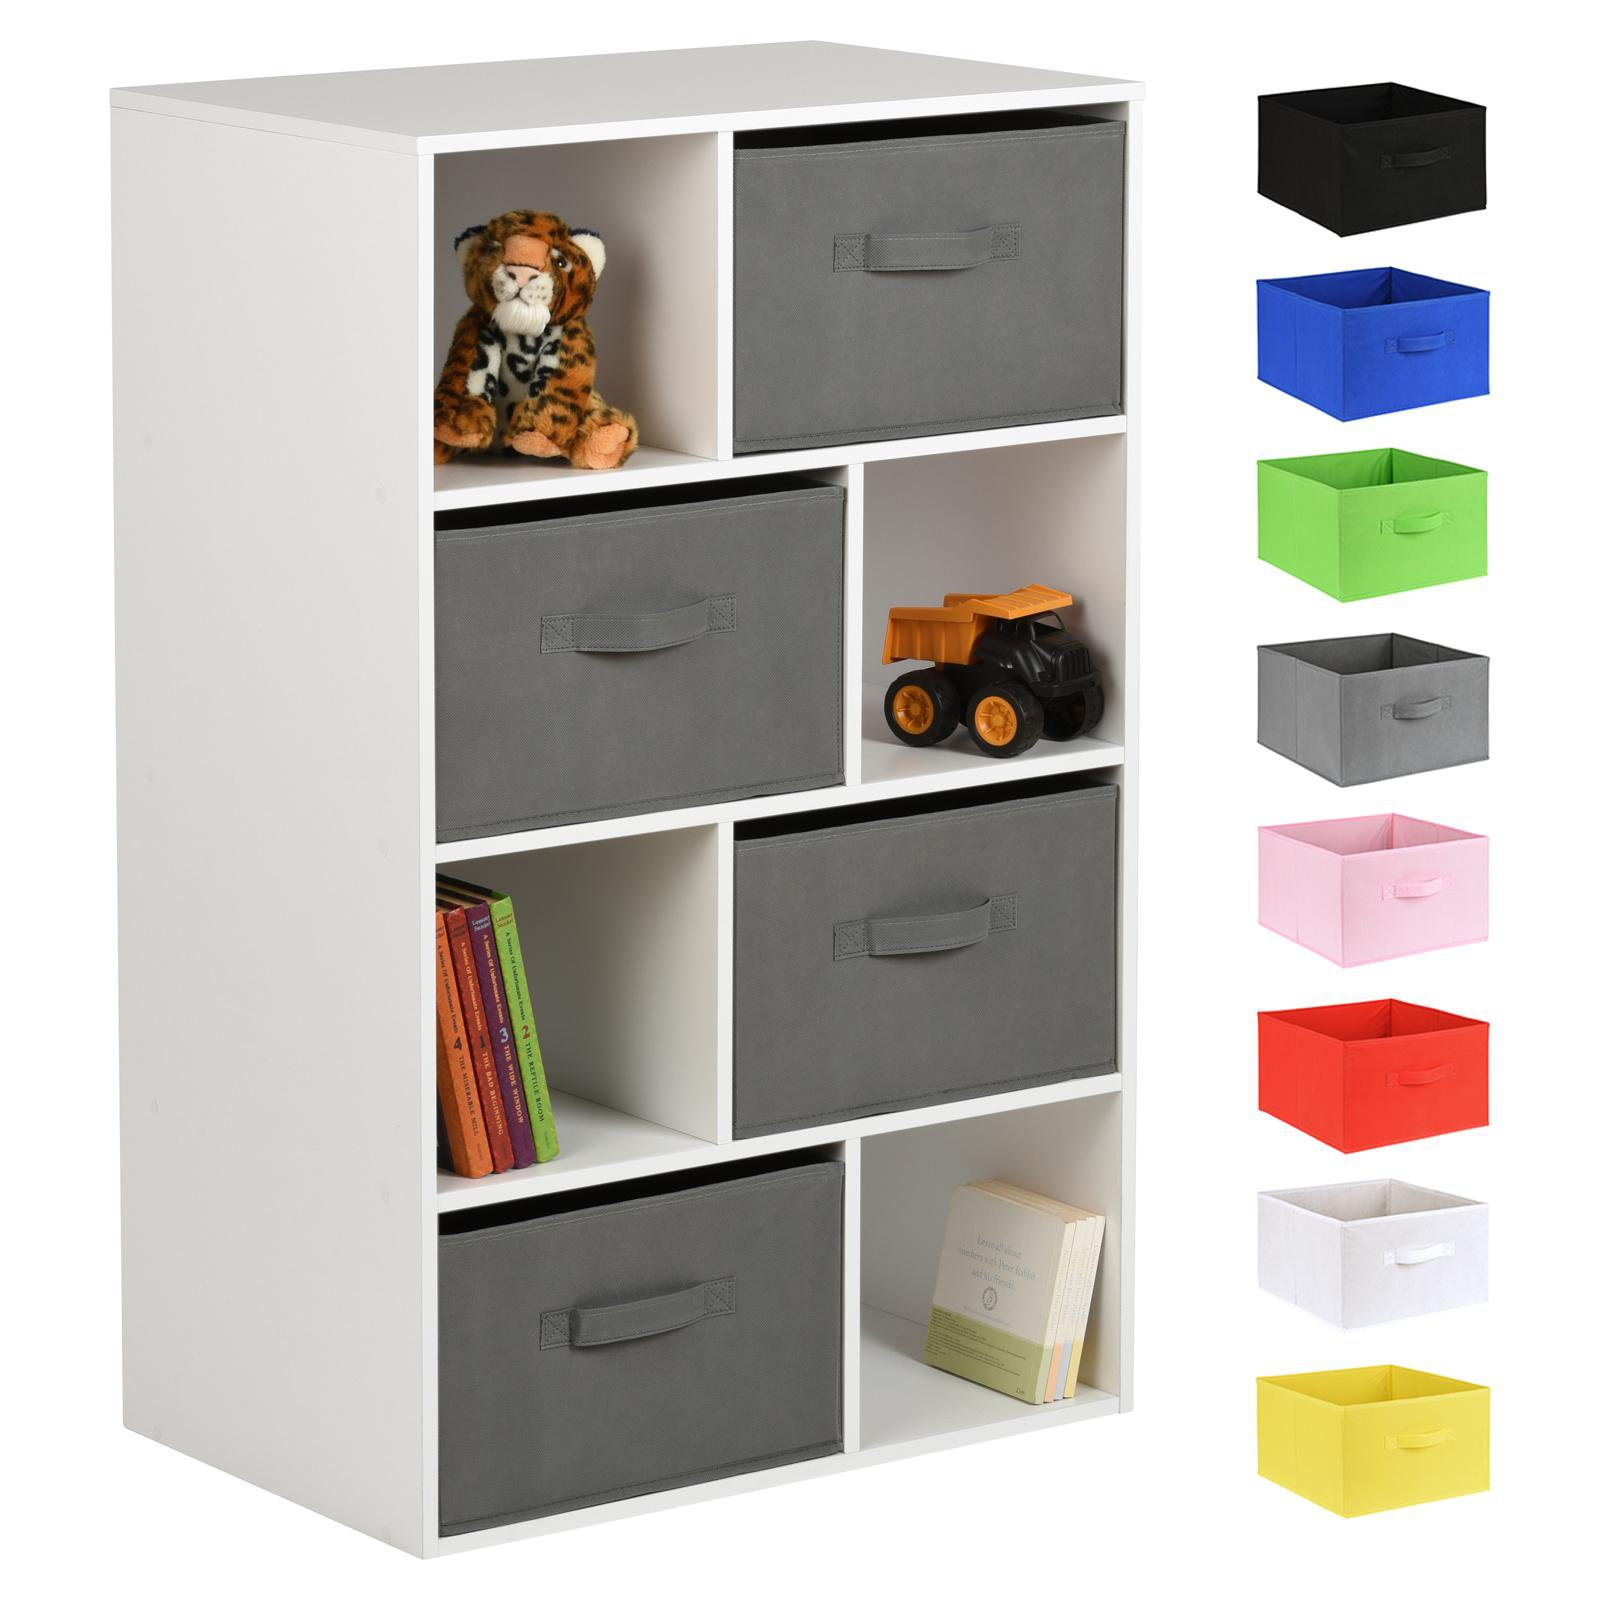 image-Hartleys White 8 Cube Kids Storage Unit & 4 Handled Box Drawers - Grey